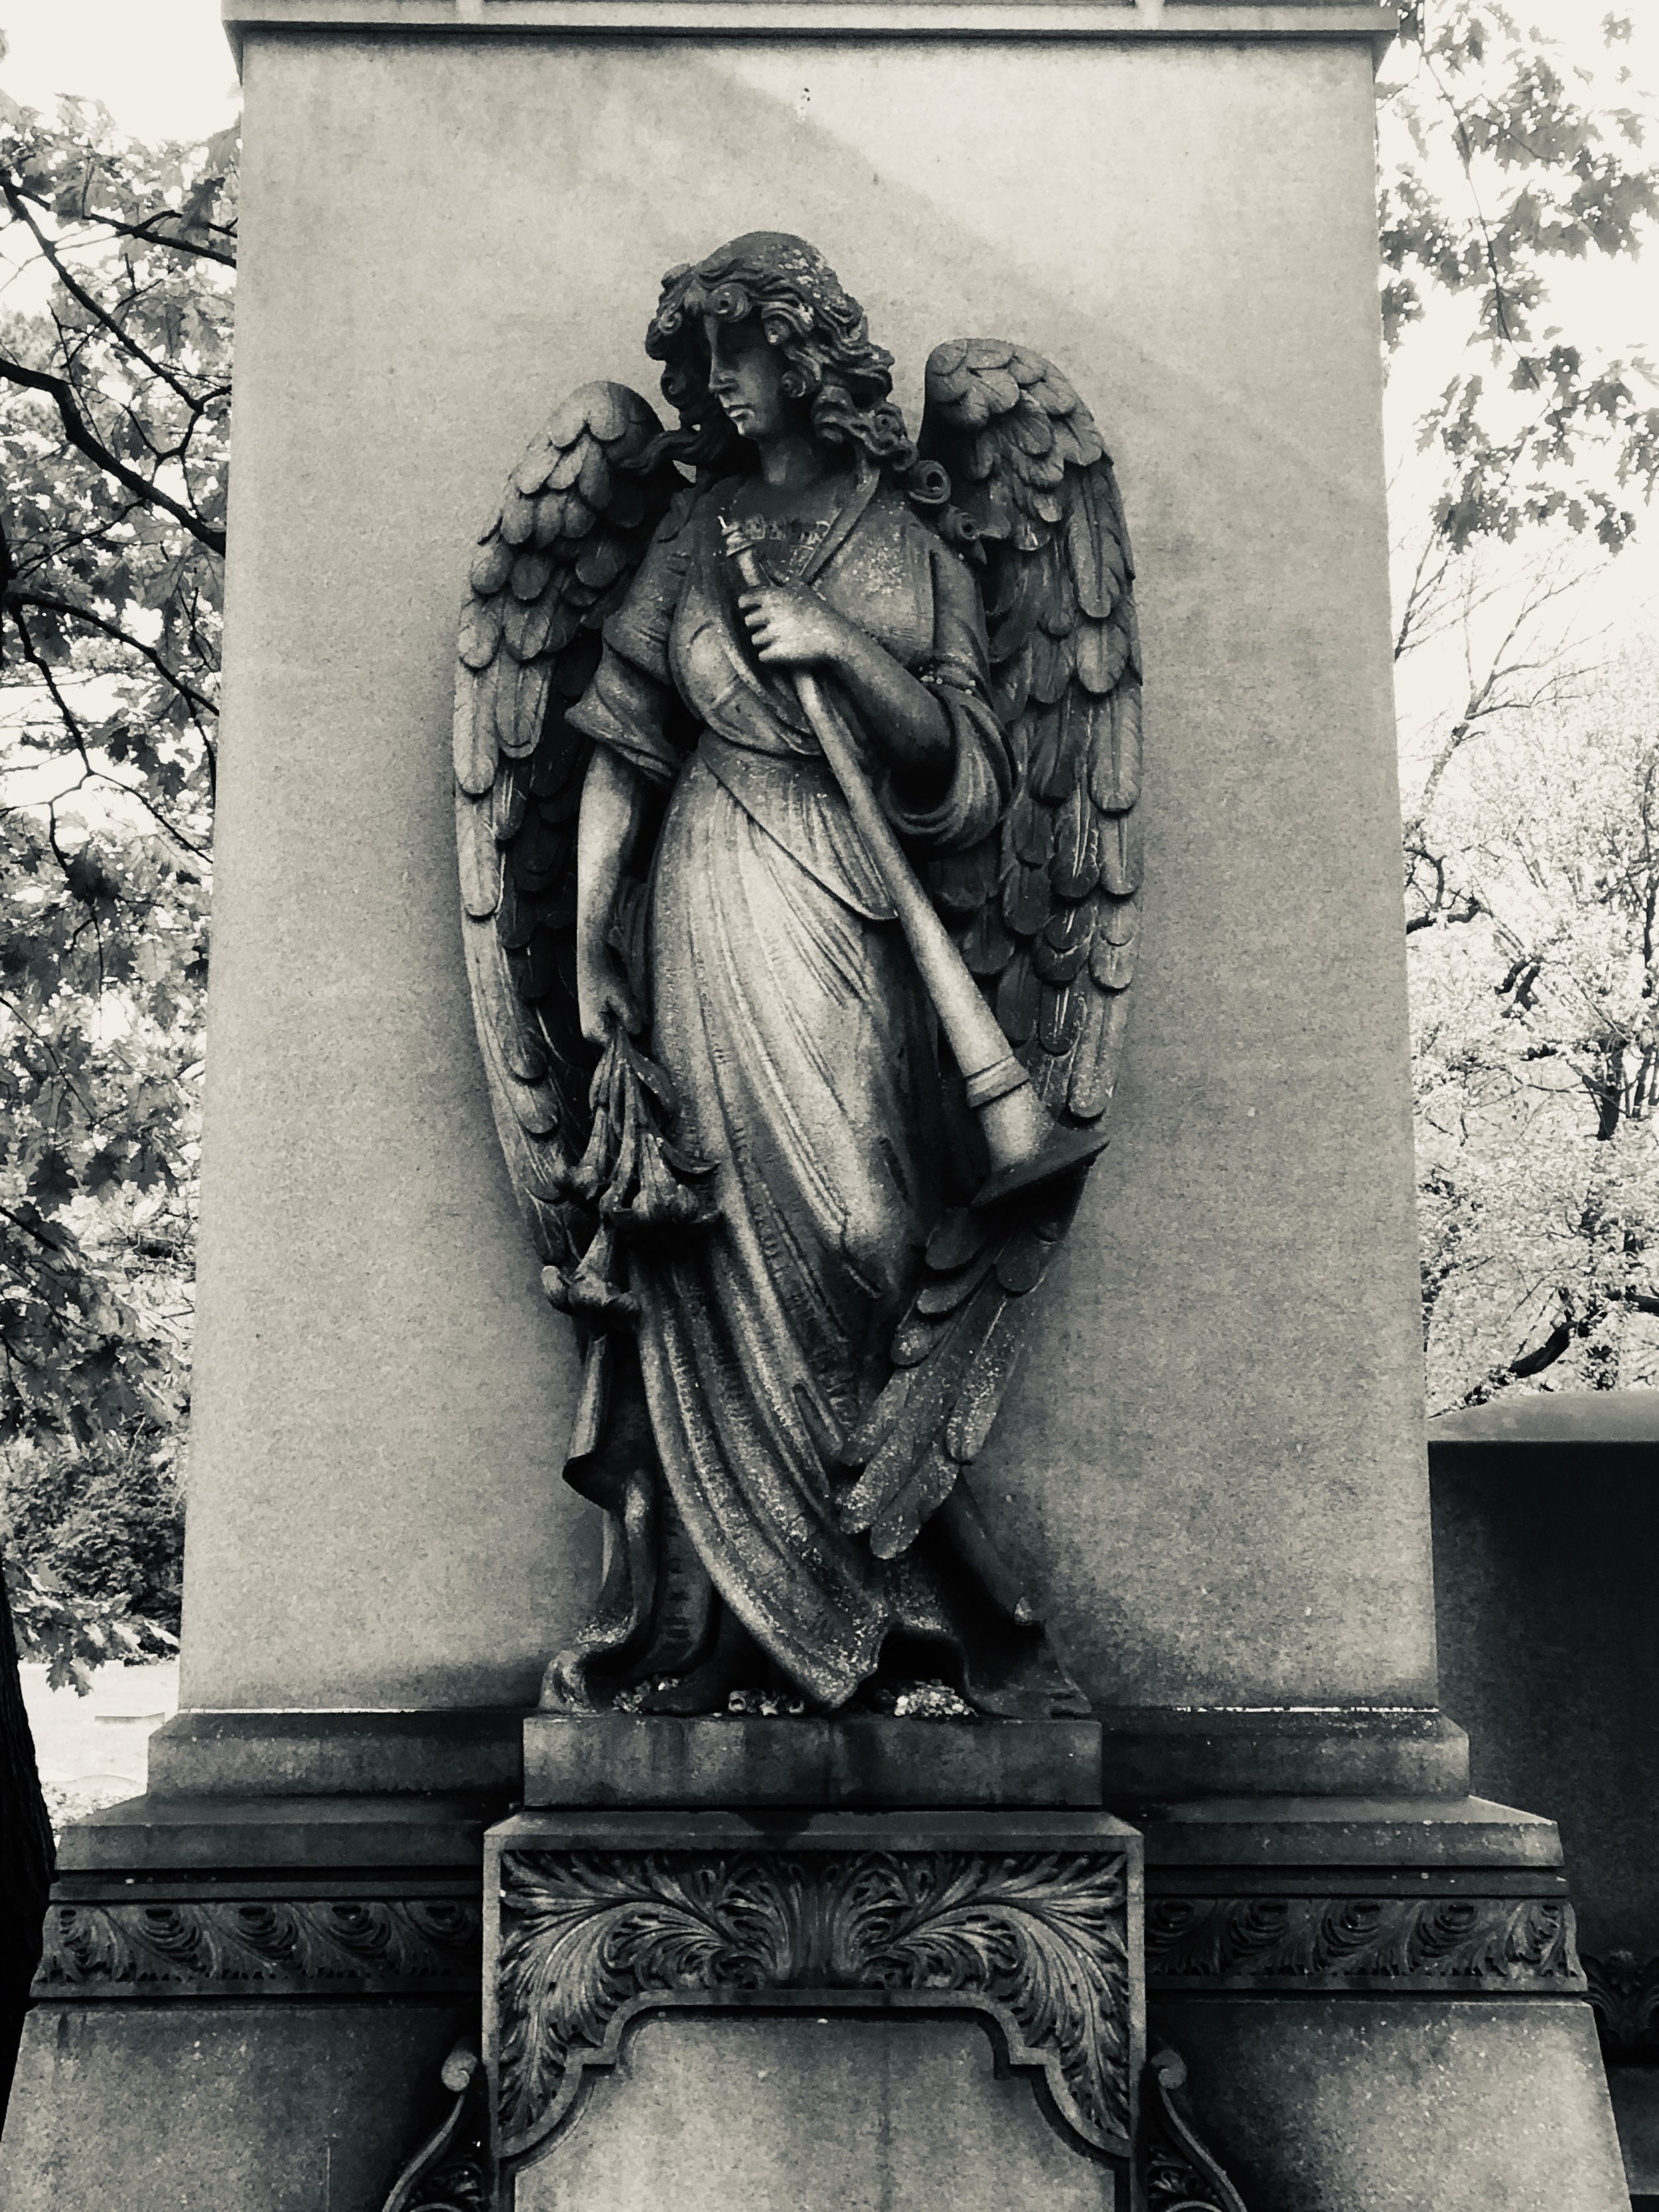 Picture taken within Lake View Cemetery in Cleveland, Ohio.